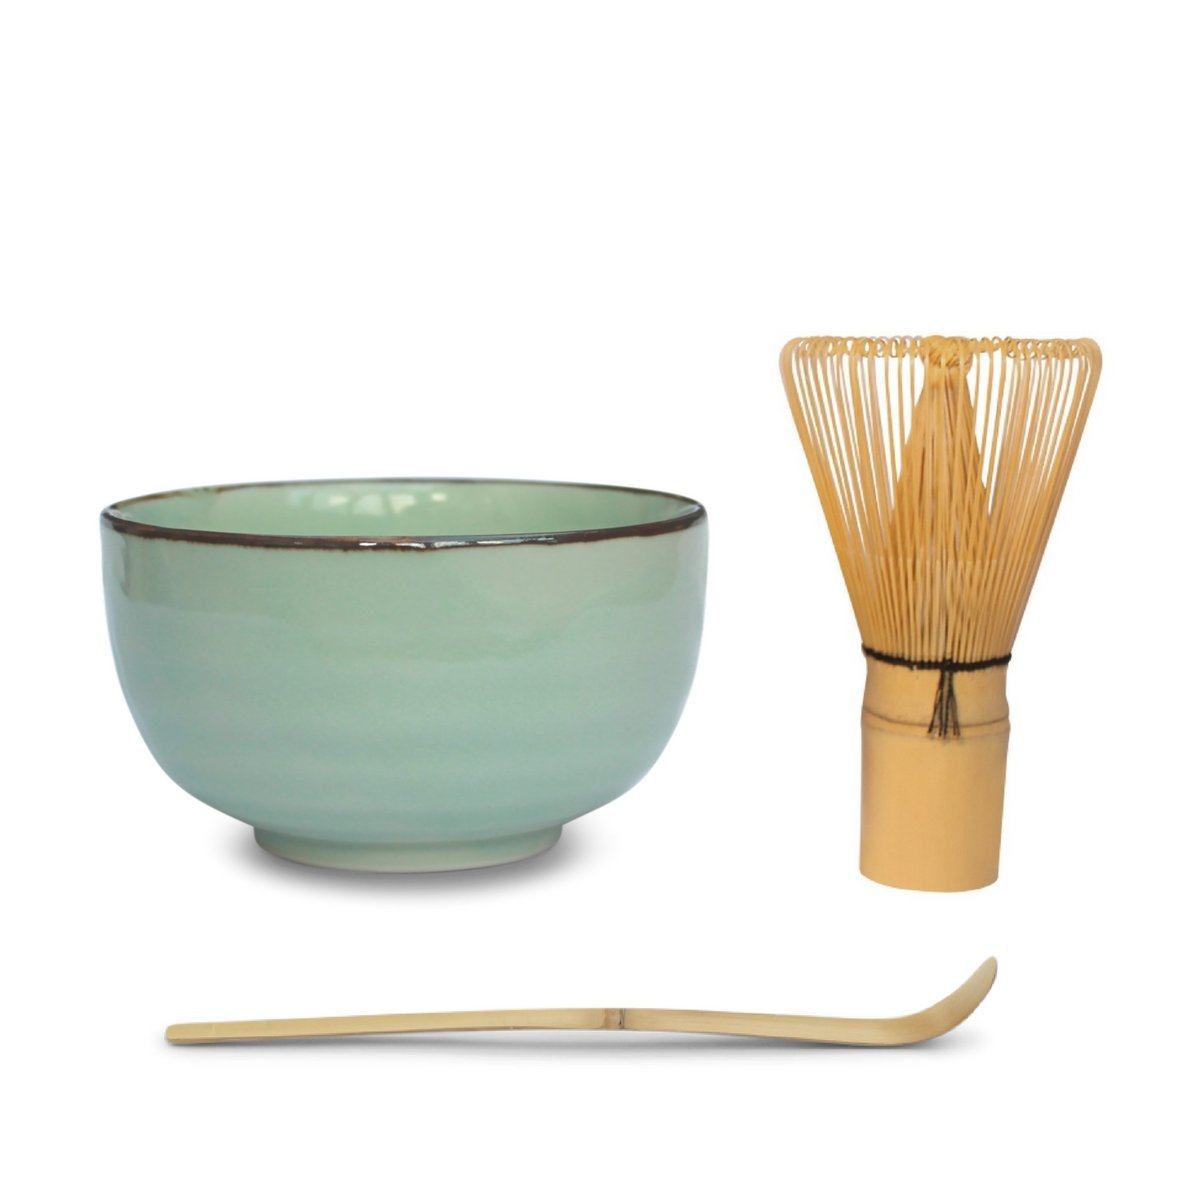 Matcha Bowl Tea Set (3 Piece) - Includes Matcha Bowl (Mint Green), Bamboo Matcha Whisk And Bamboo Matcha Spoon Or Scoop - Perfect For the Japanese Matcha Tea Enthusiast Or As A Present TeaTerrifics